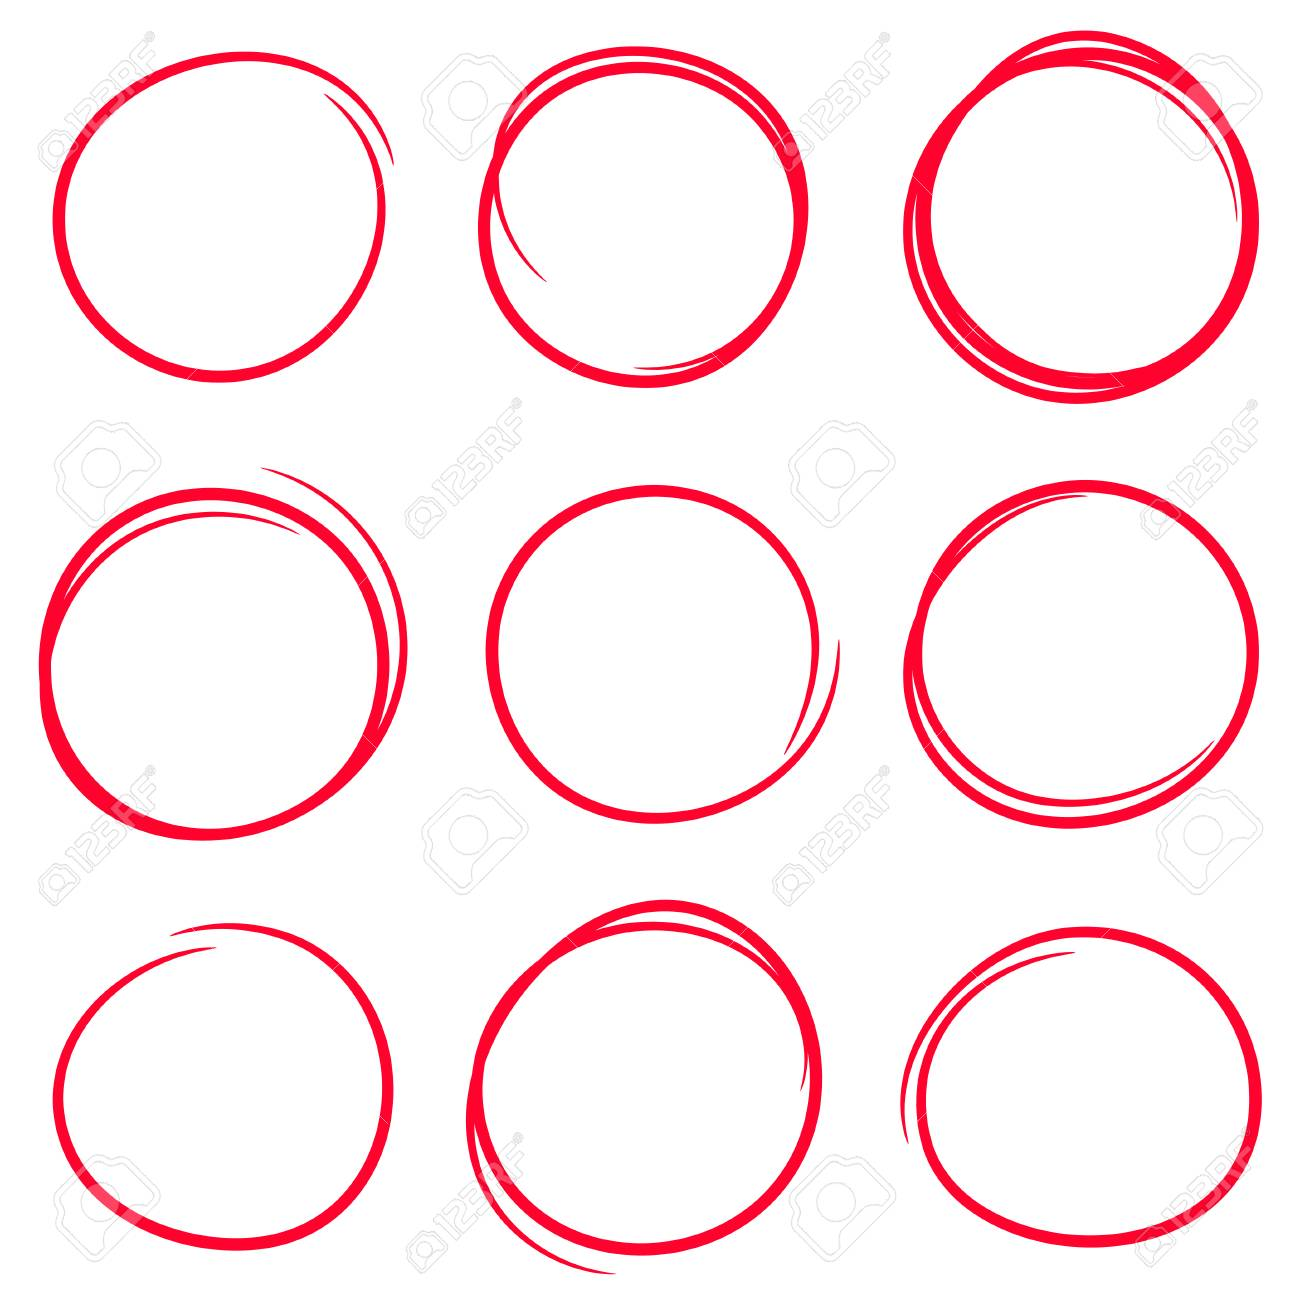 Set of red hand drawn scribble circles - 120188250